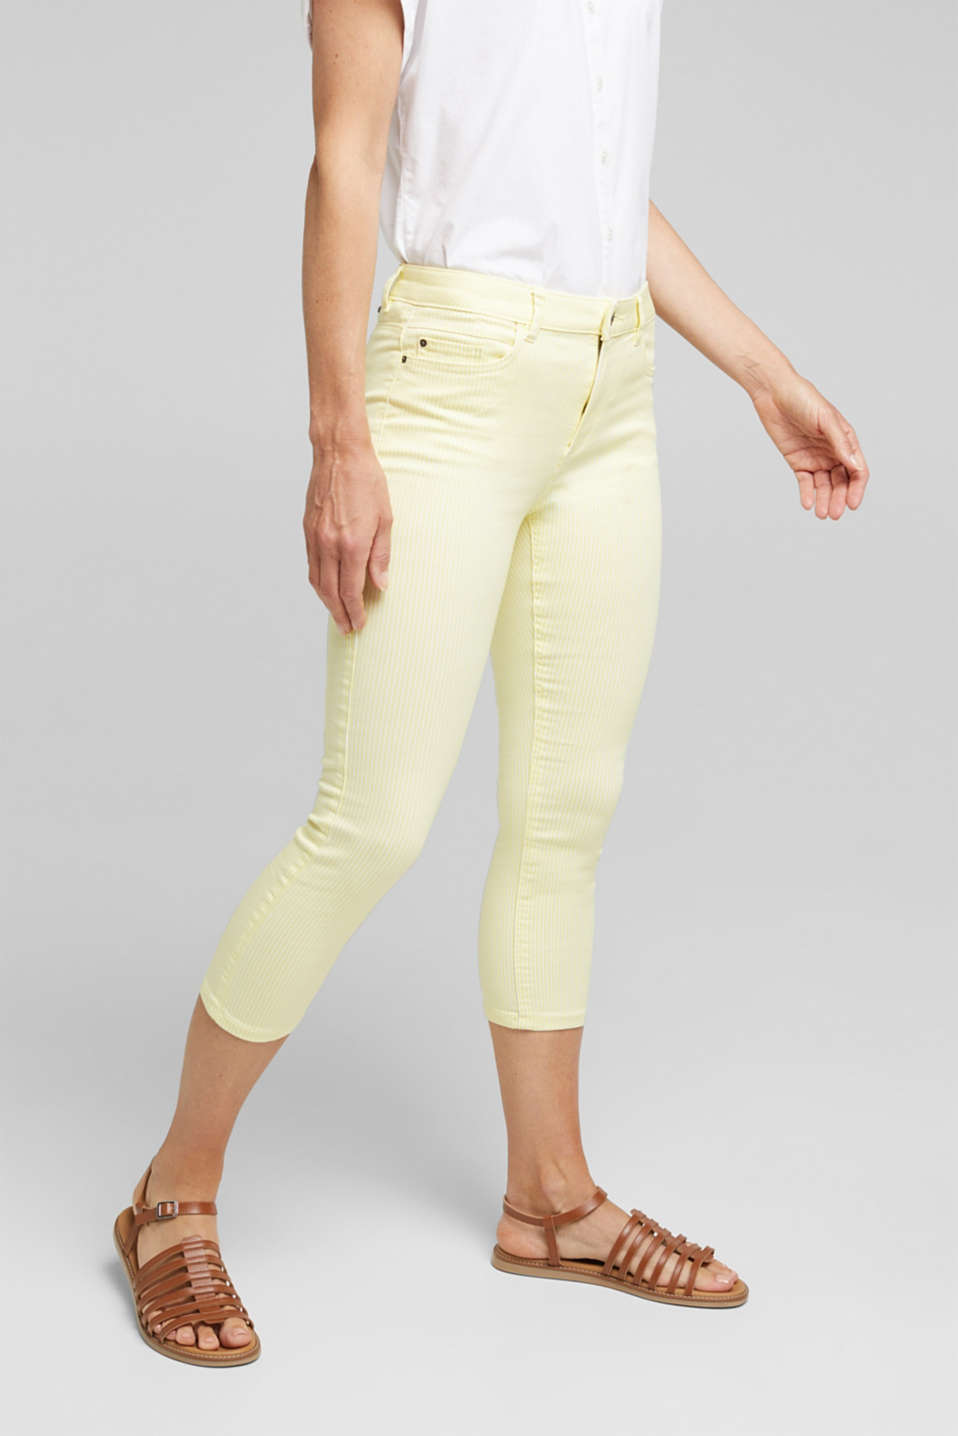 Esprit - REPREVE striped Trousers, recycled